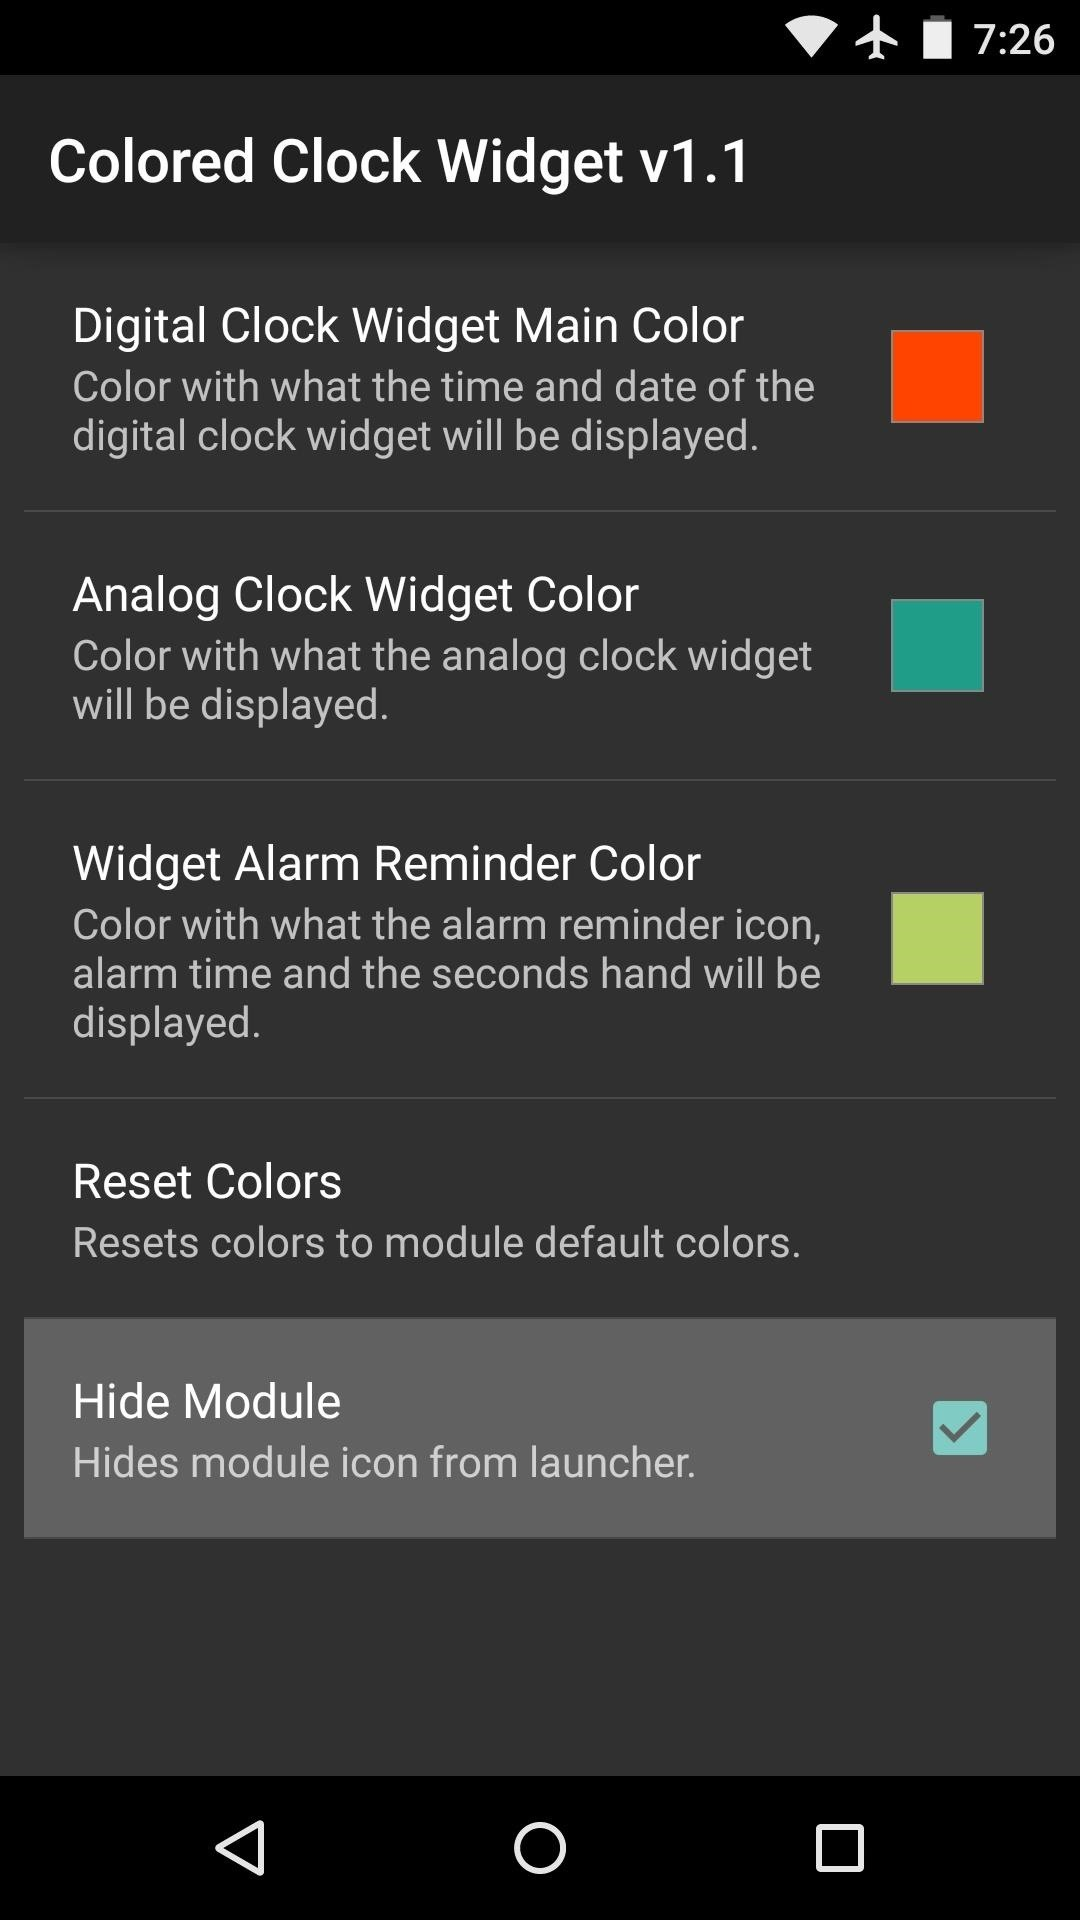 How to Change the Color of Android's Clock Widget